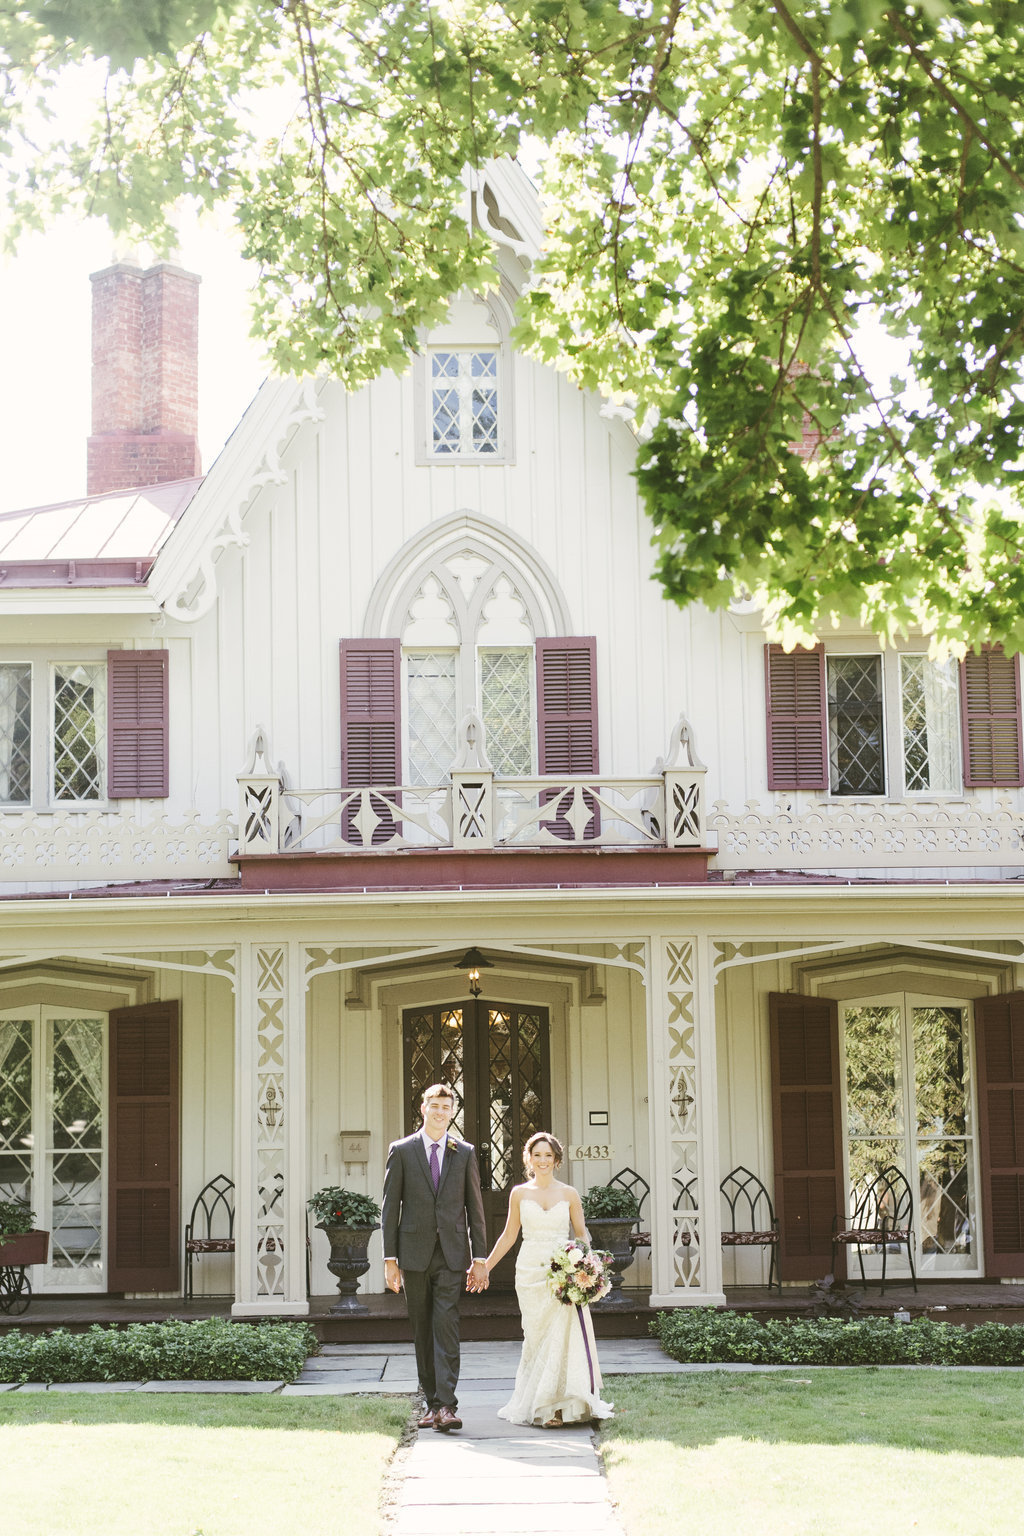 Monica-Relyea-Events-Alicia-King-Photography-Delamater-Inn-Beekman-Arms-Wedding-Rhinebeck-New-York-Hudson-Valley119